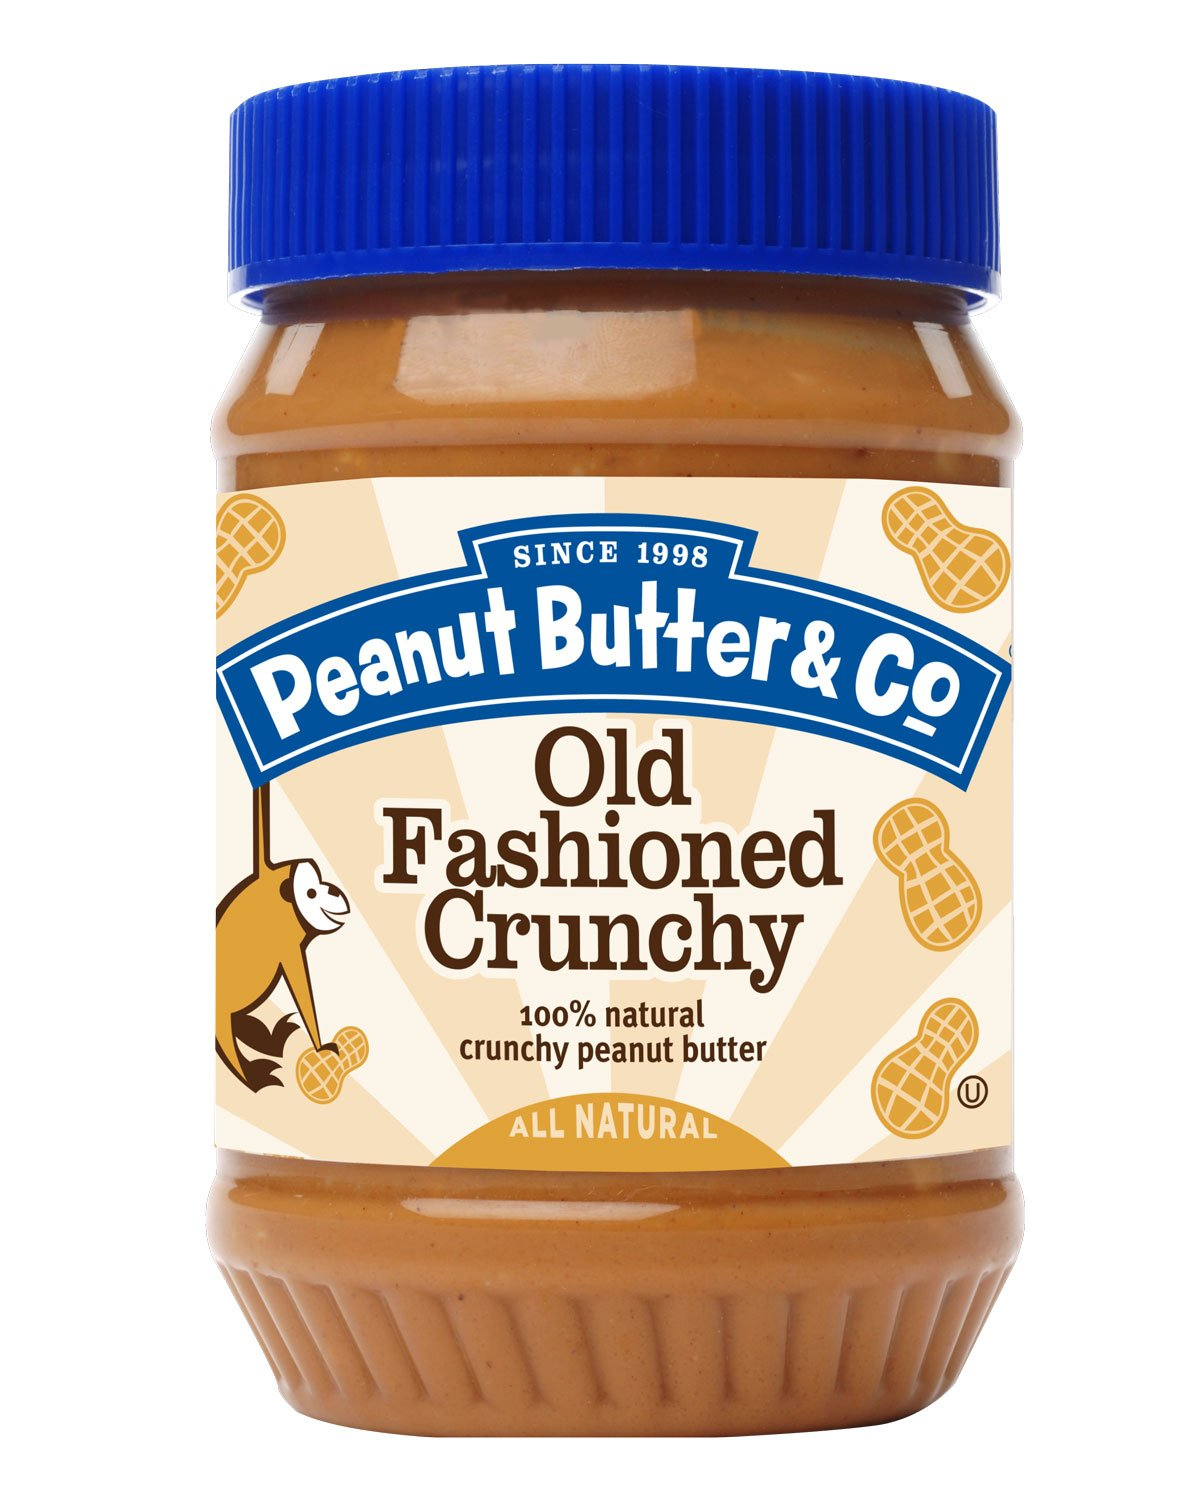 Peanut Butter & Co Old Fashioned Peanut Butter, Crunchy, 16 Ounce (Pack of 6)